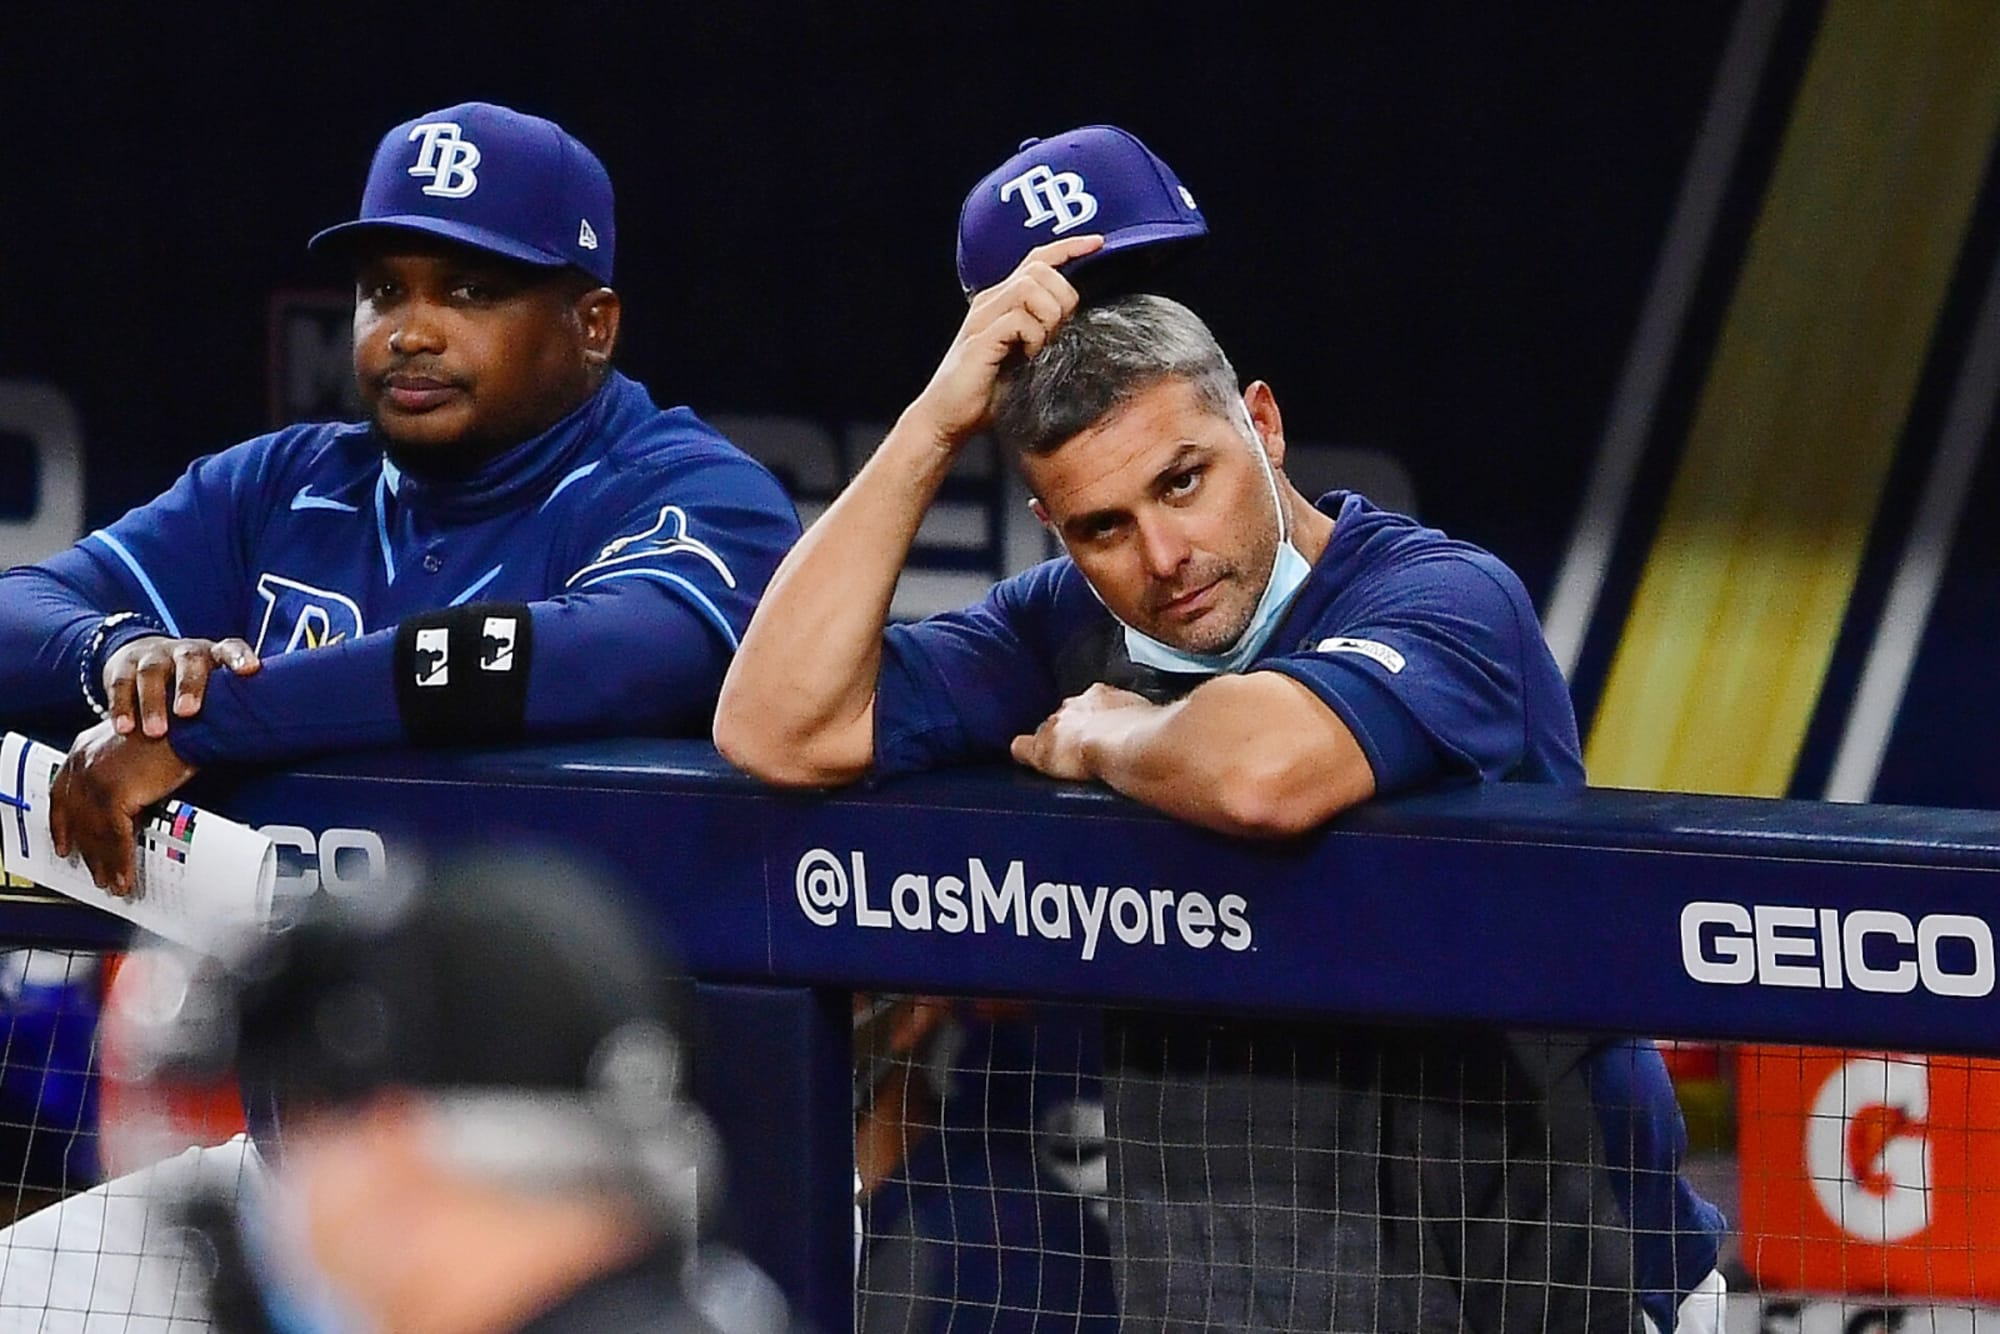 Twitter destroyed Kevin Cash for pulling Blake Snell in middle of World Series gem